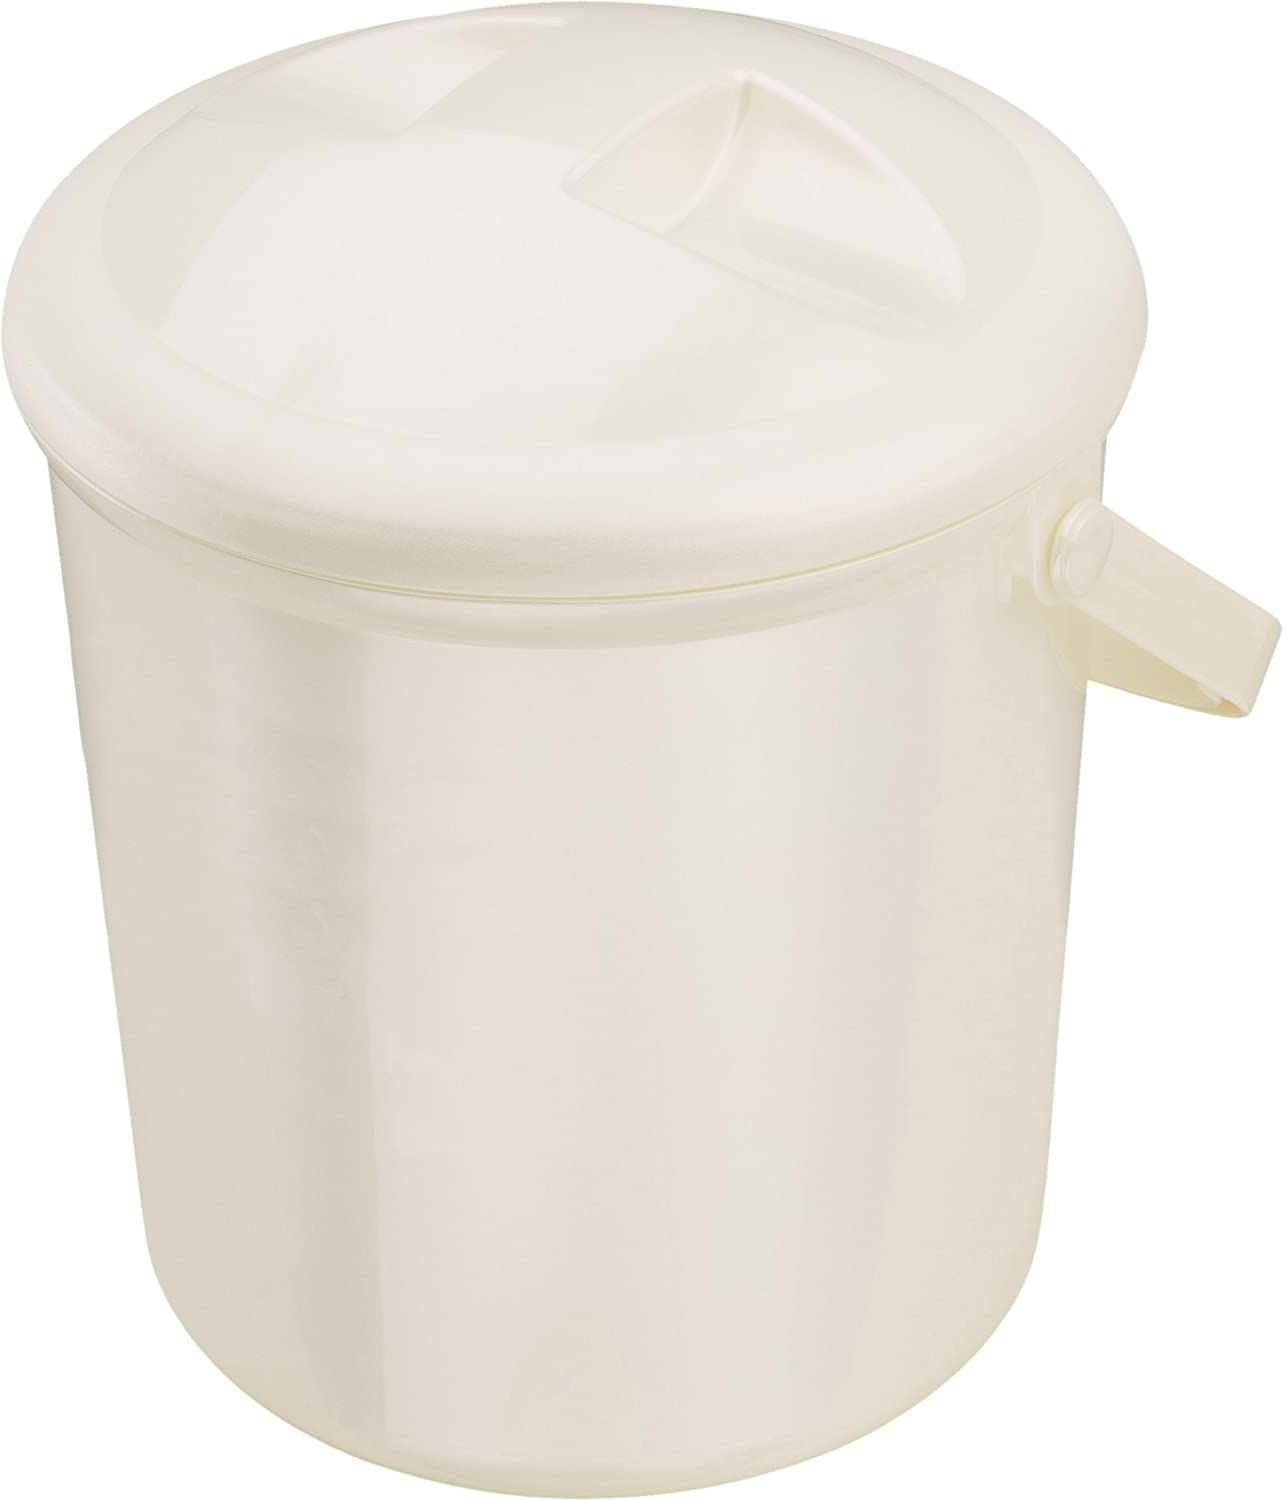 Rotho Babydesign Nappy Pail, 10L, From 0 Months, Bella Bambina, Pearlwhite Cream, 200210100 20021 0100